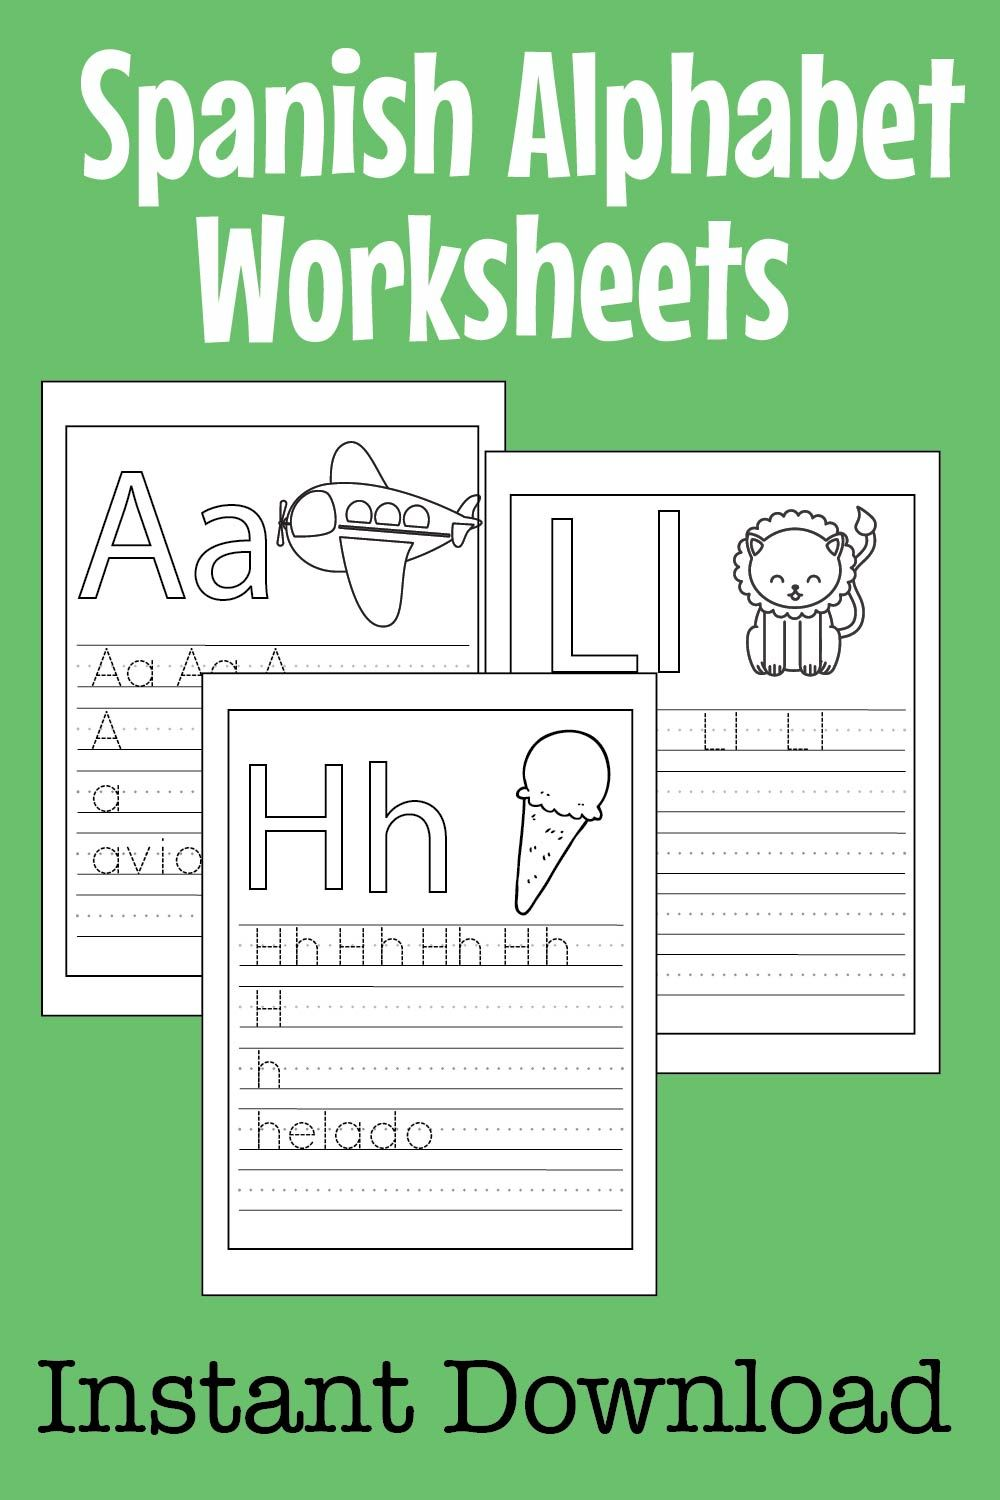 Spanish Abc Worksheets For Kids Preschool Kindergarten Etsy Abc Worksheets Alphabet Worksheets Preschool Letters